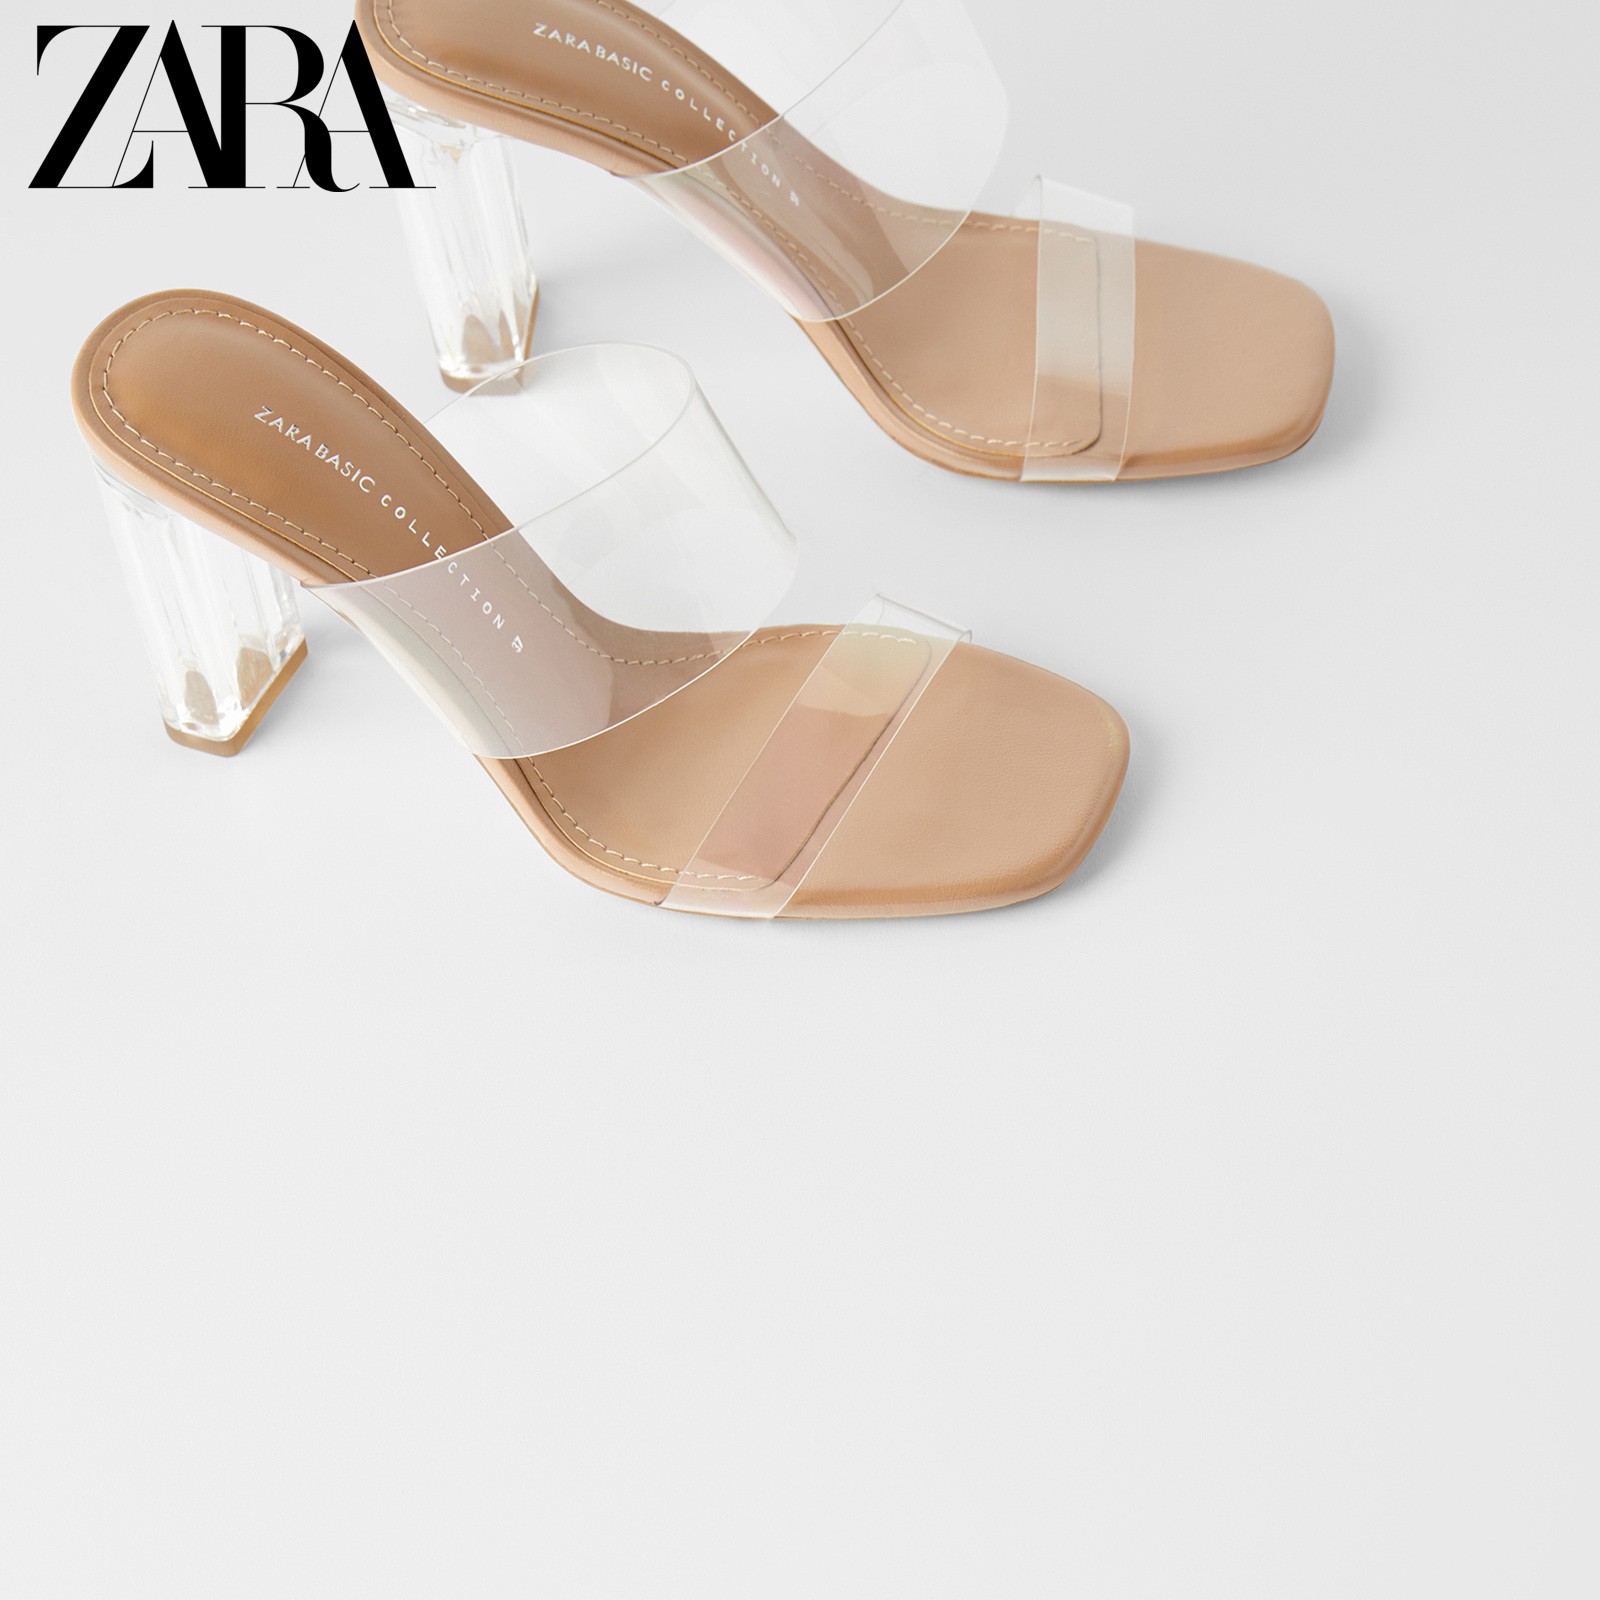 Zara women's shoes natural color acrylic high heel plastic crystal sandals 12316001111